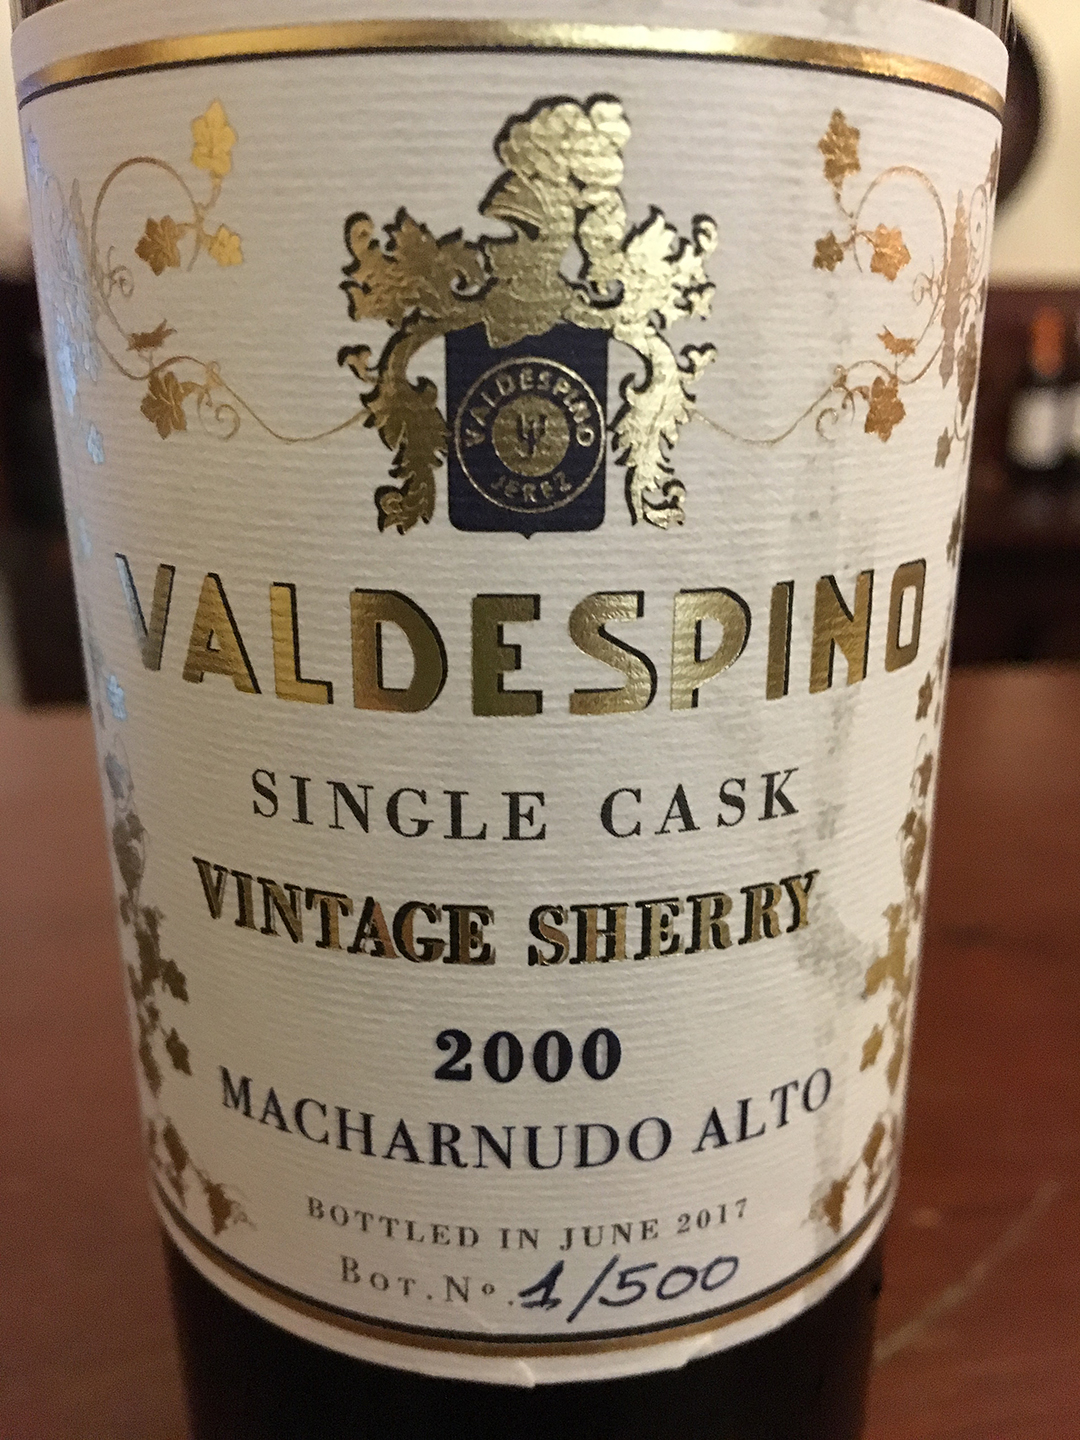 Valdespino Single Cask Vintage Sherry 2000